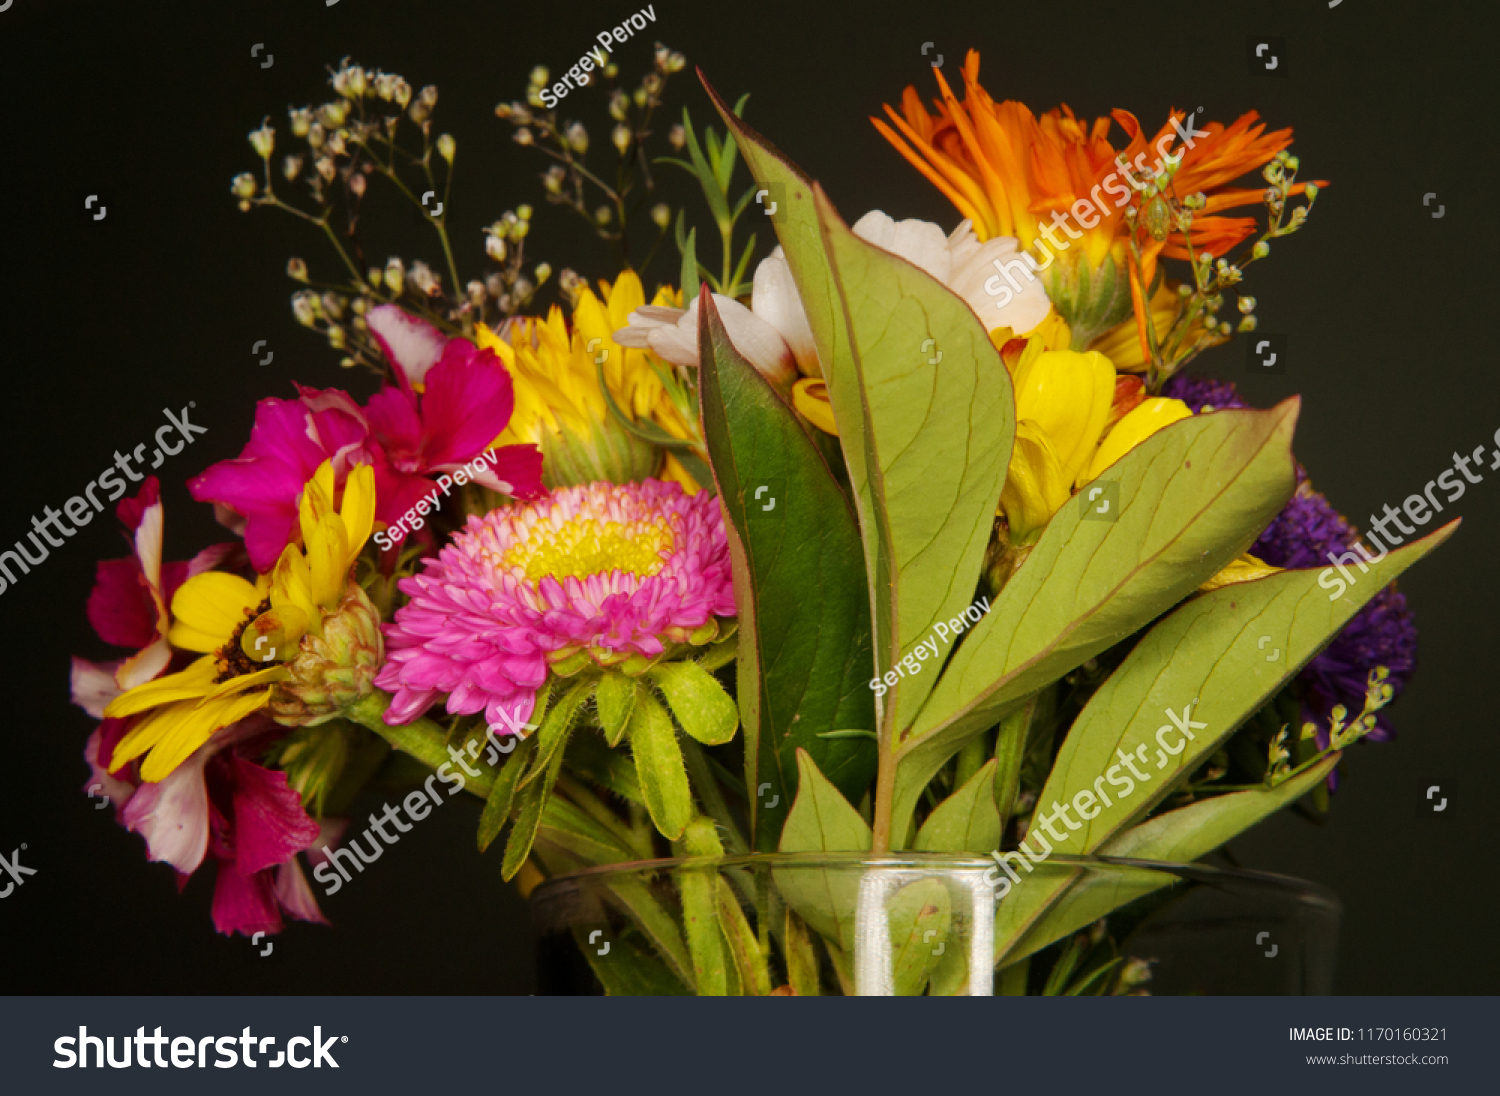 Close-up of a clear glass vase filled with wildflowers isolated on a black background #1170160321